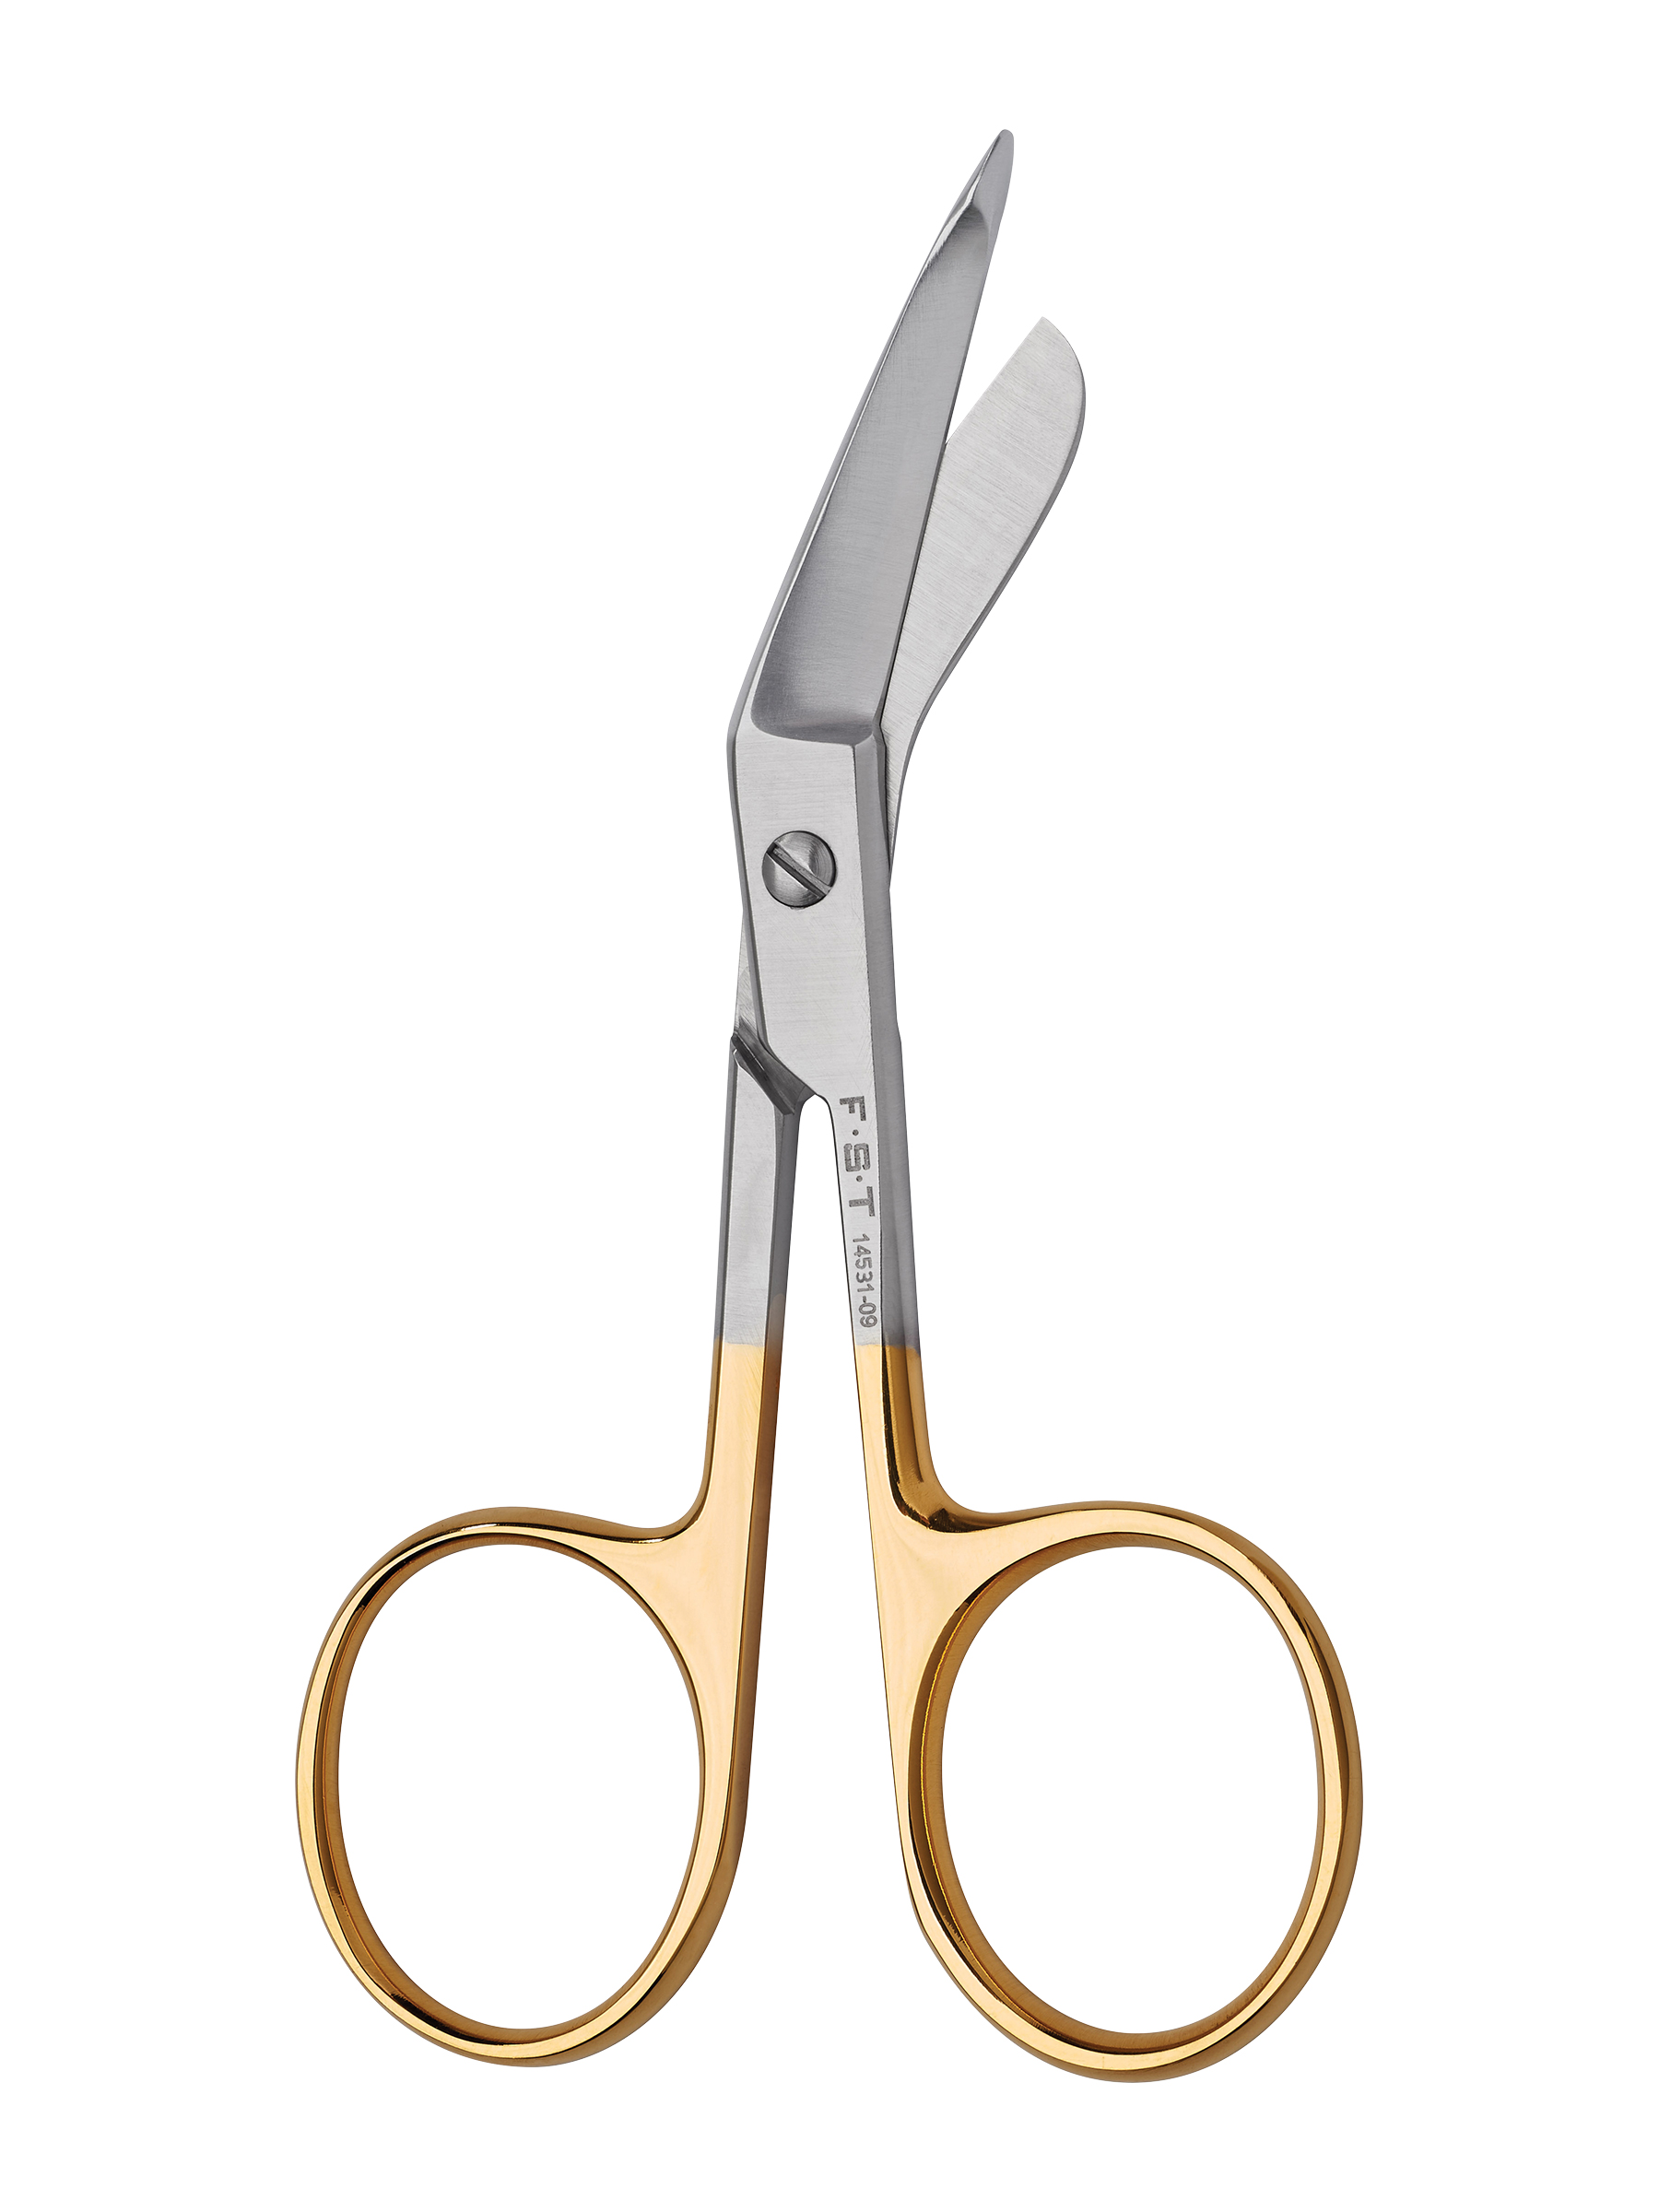 Tungsten Carbide Mini Lister Scissors